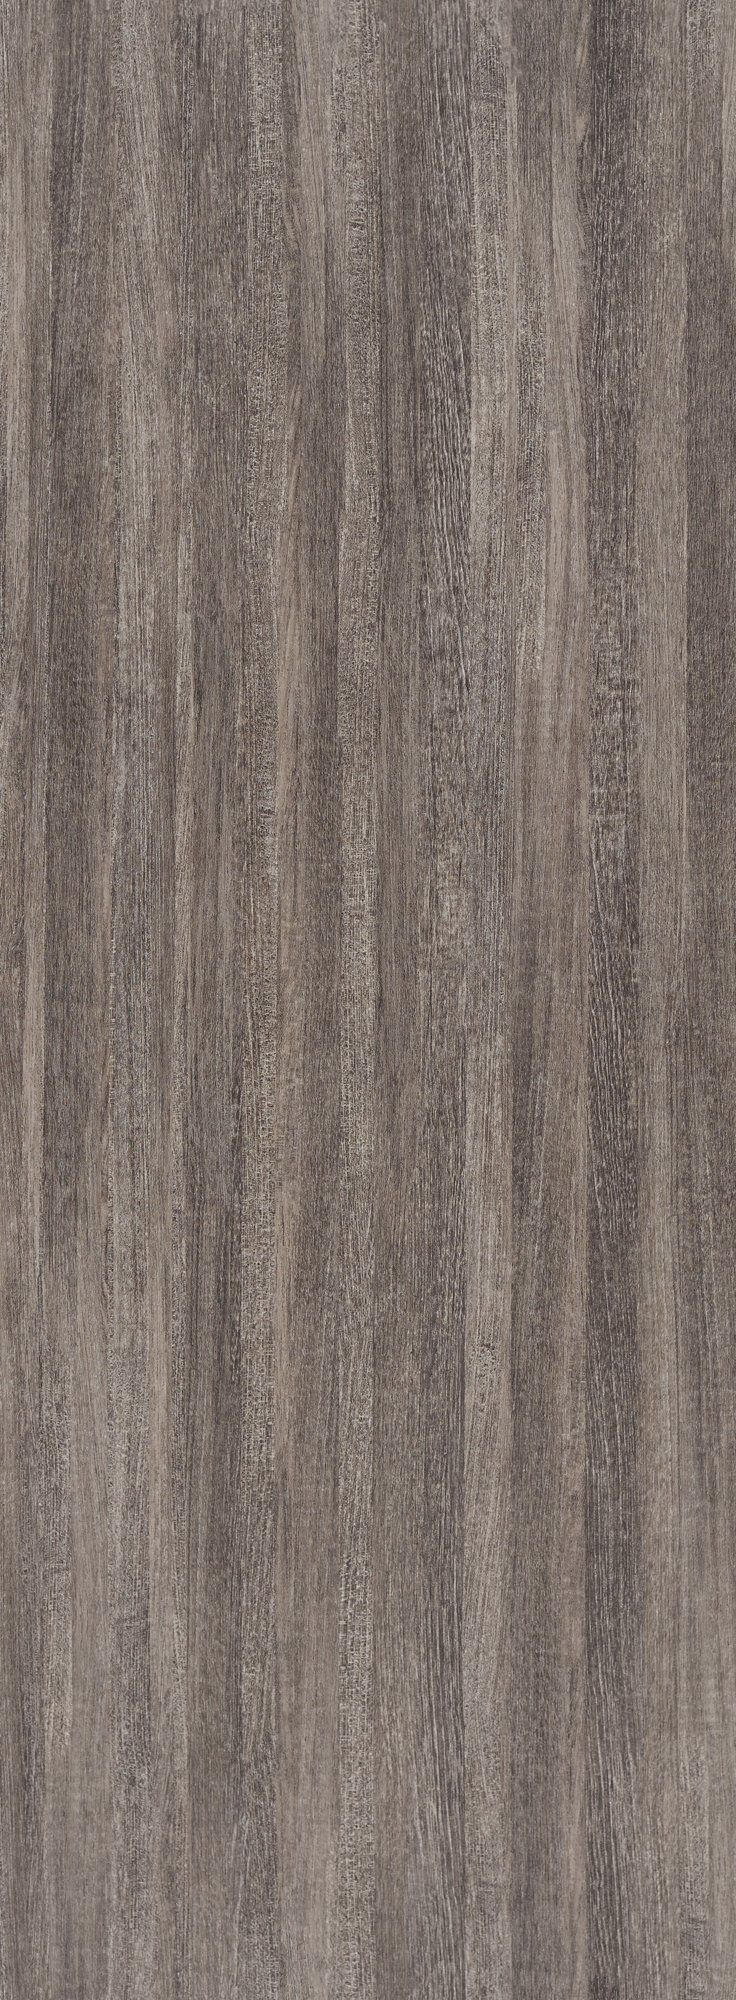 Weathered Fiberwood. One of 32 new designs.   Meet SurfaceSet® 2018 by Formica Corporation. Three dynamic and inviting palettes of creative contrasts, pushing the boundaries of calm to bold, organic to elegant, art to science. Bring beauty, durability and originality to your vision.   Get free samples of Weathered Fiberwood by clicking through   #formicalaminate #SurfaceSet2018 #design #newproducts #interiordesign #inspiration #architecture #plam